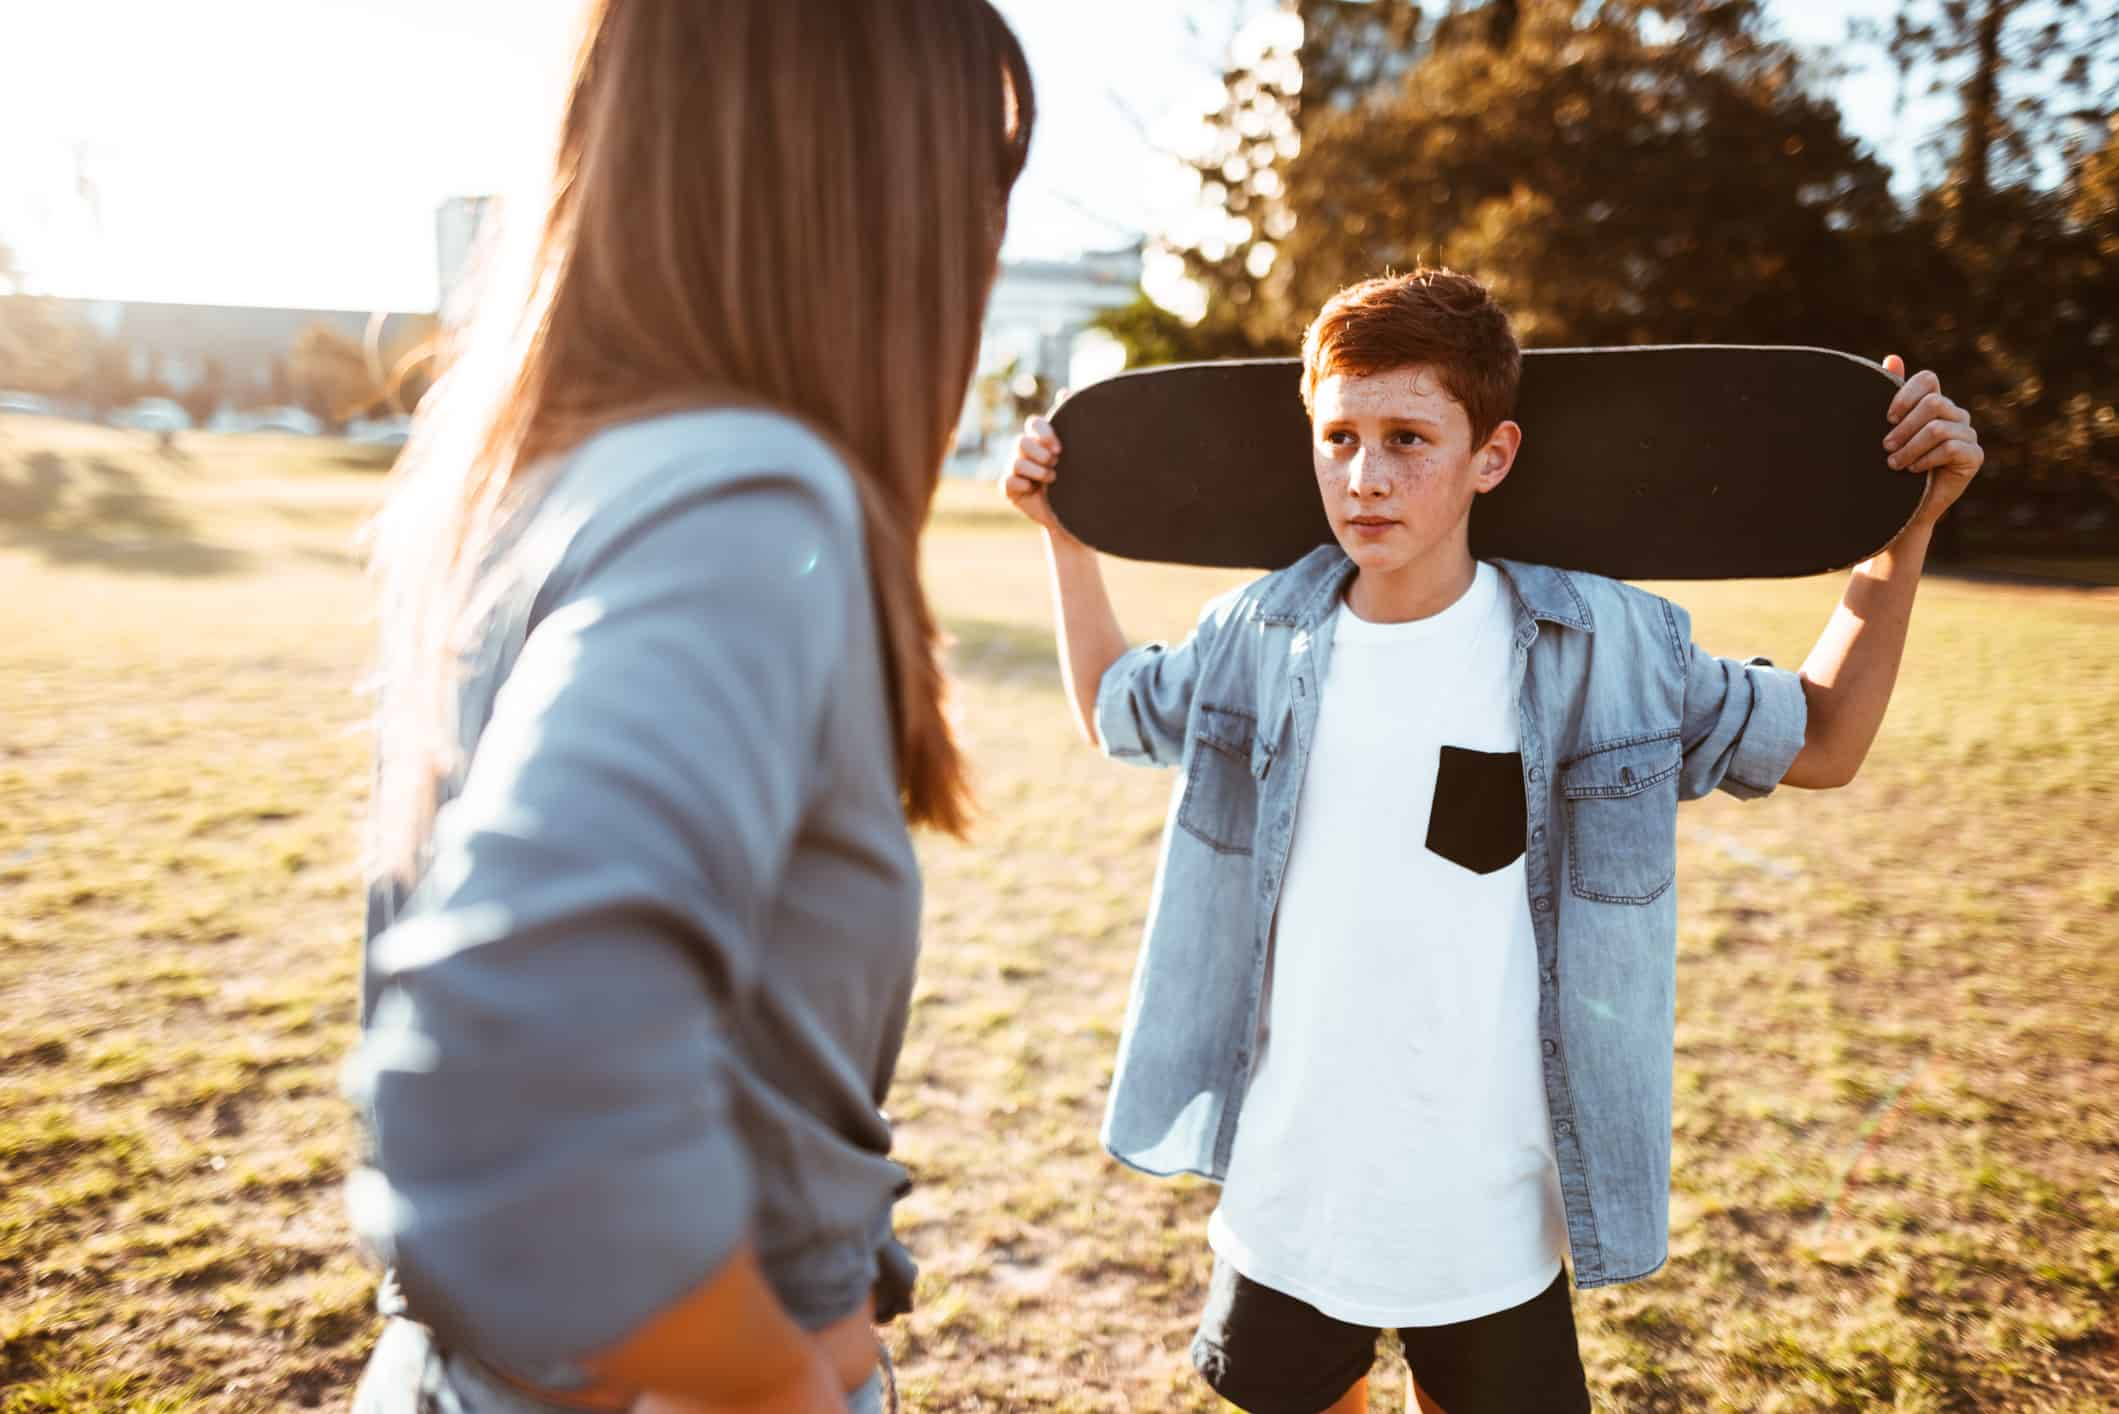 Helicopter Parenting: From Good Intentions to Poor Results